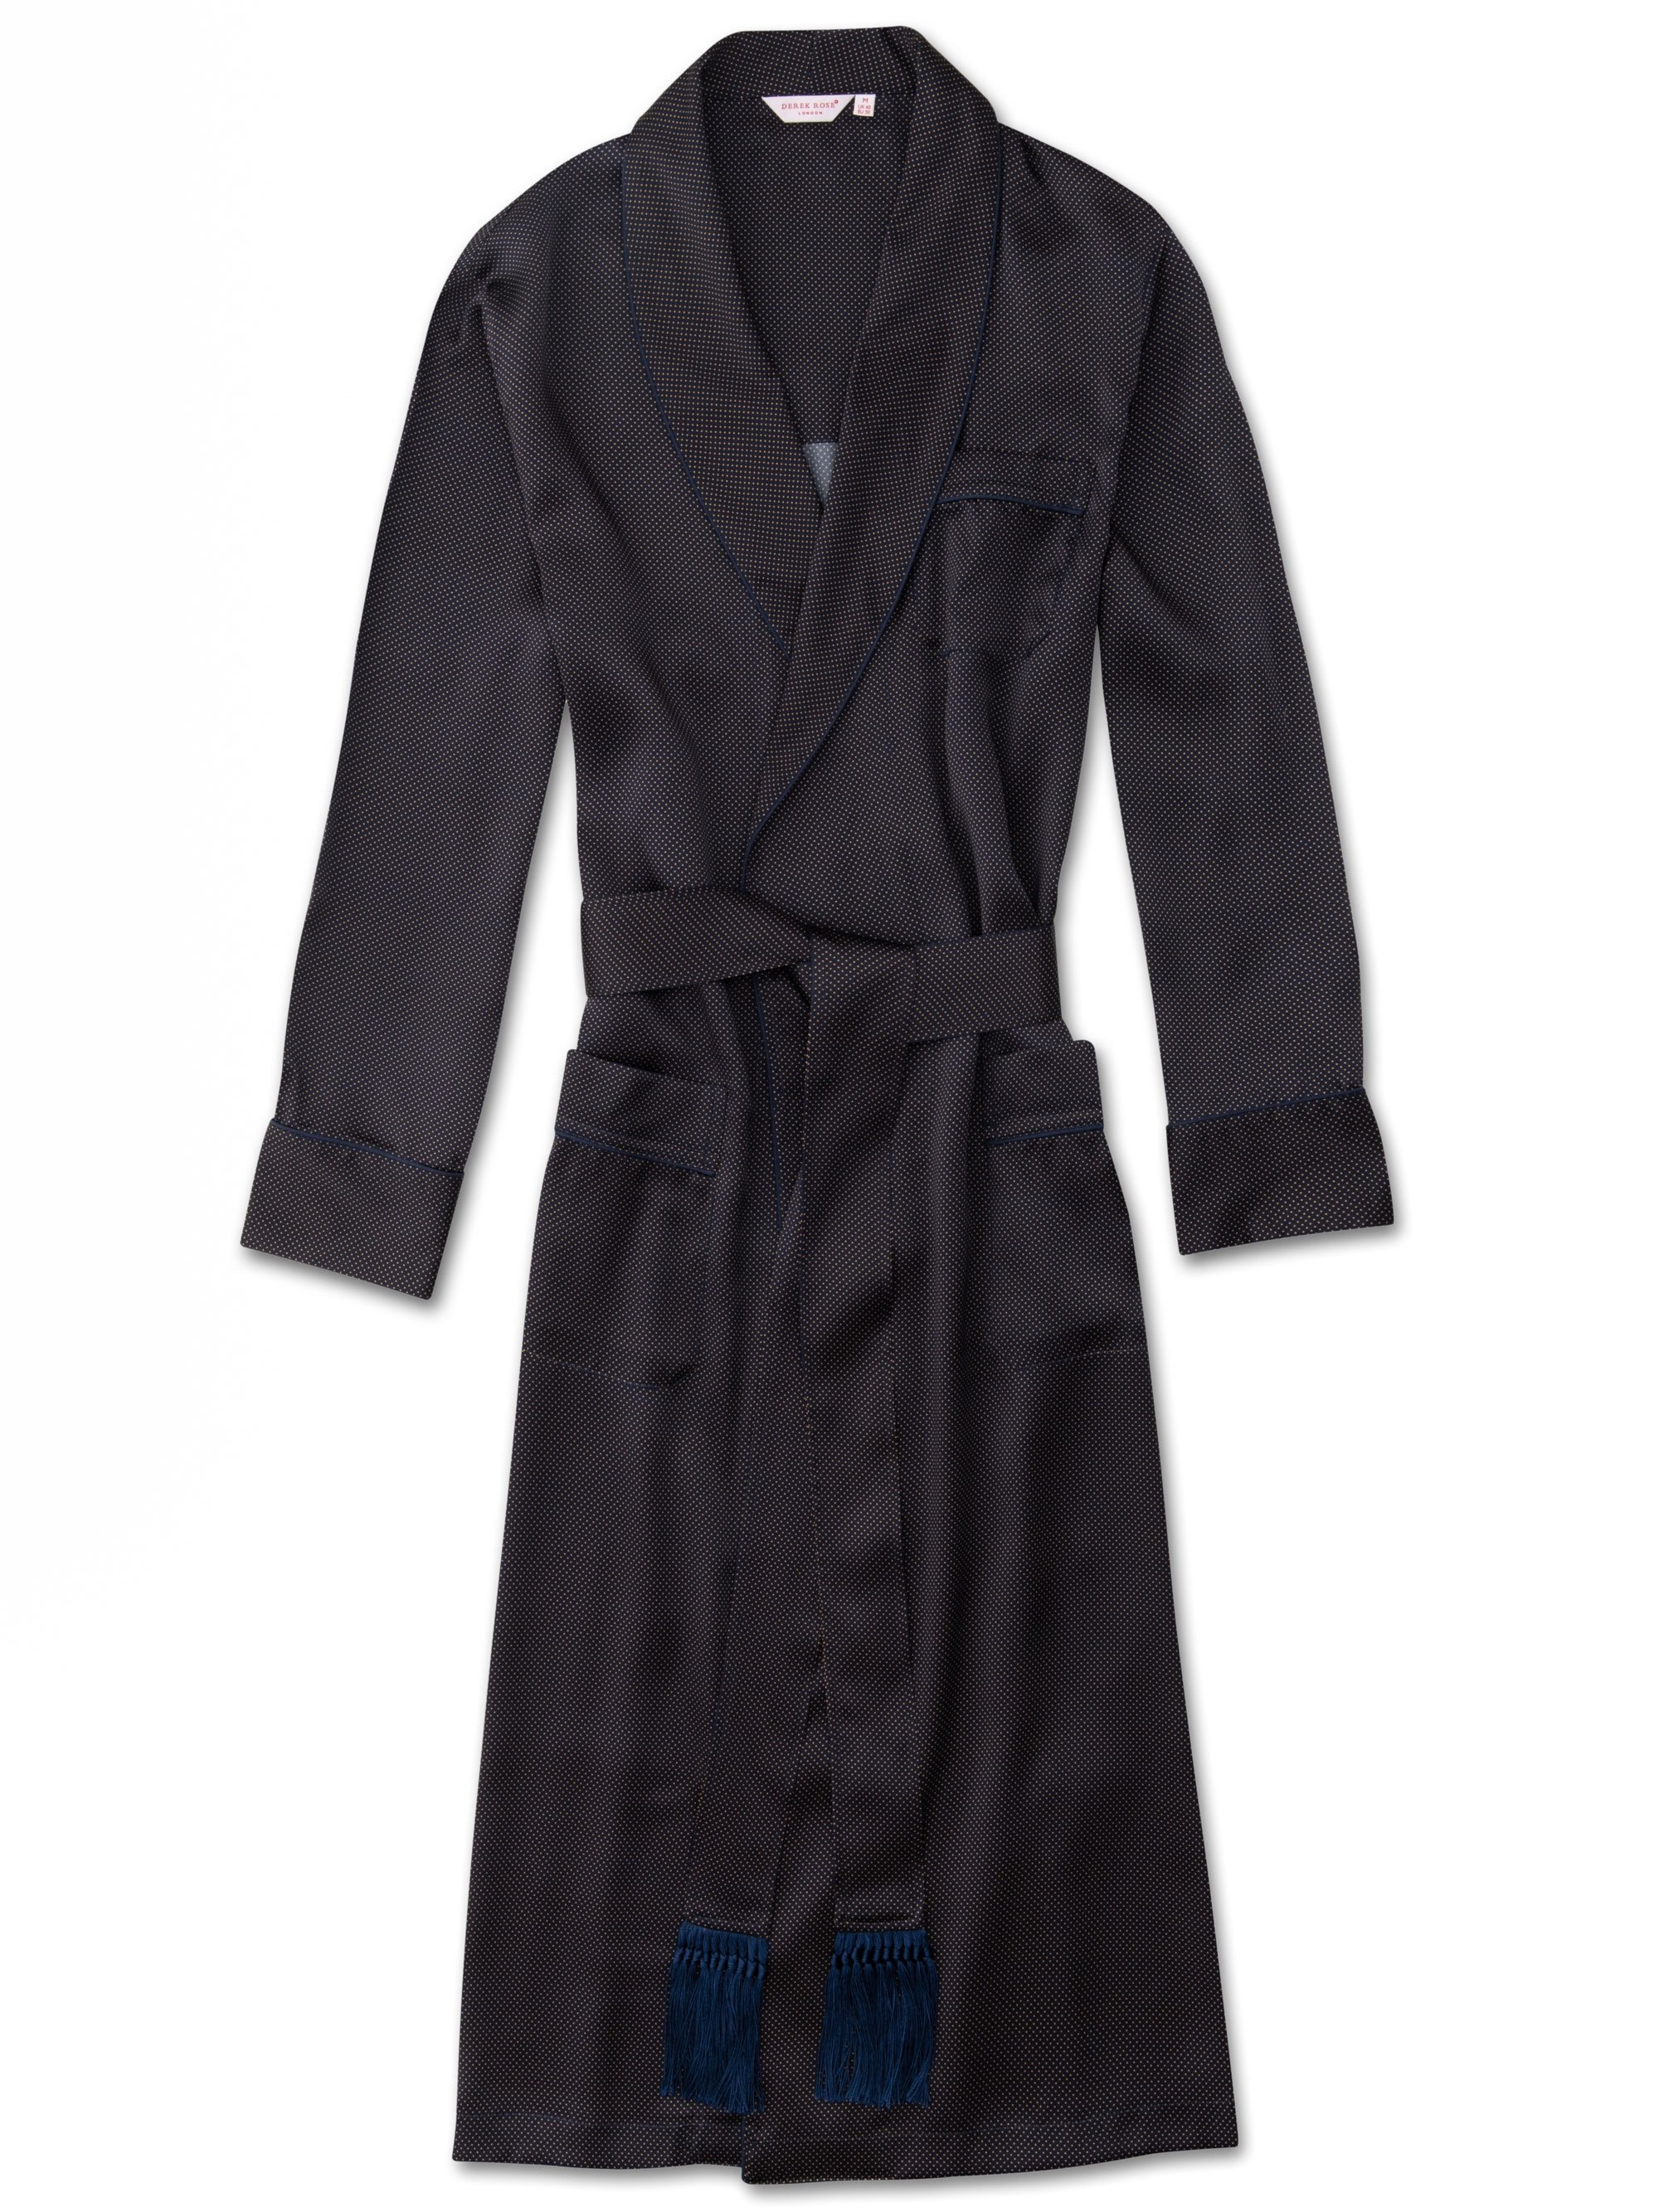 Men's Tasseled Belt Dressing Gown Brindisi 45 Pure Silk Satin Navy